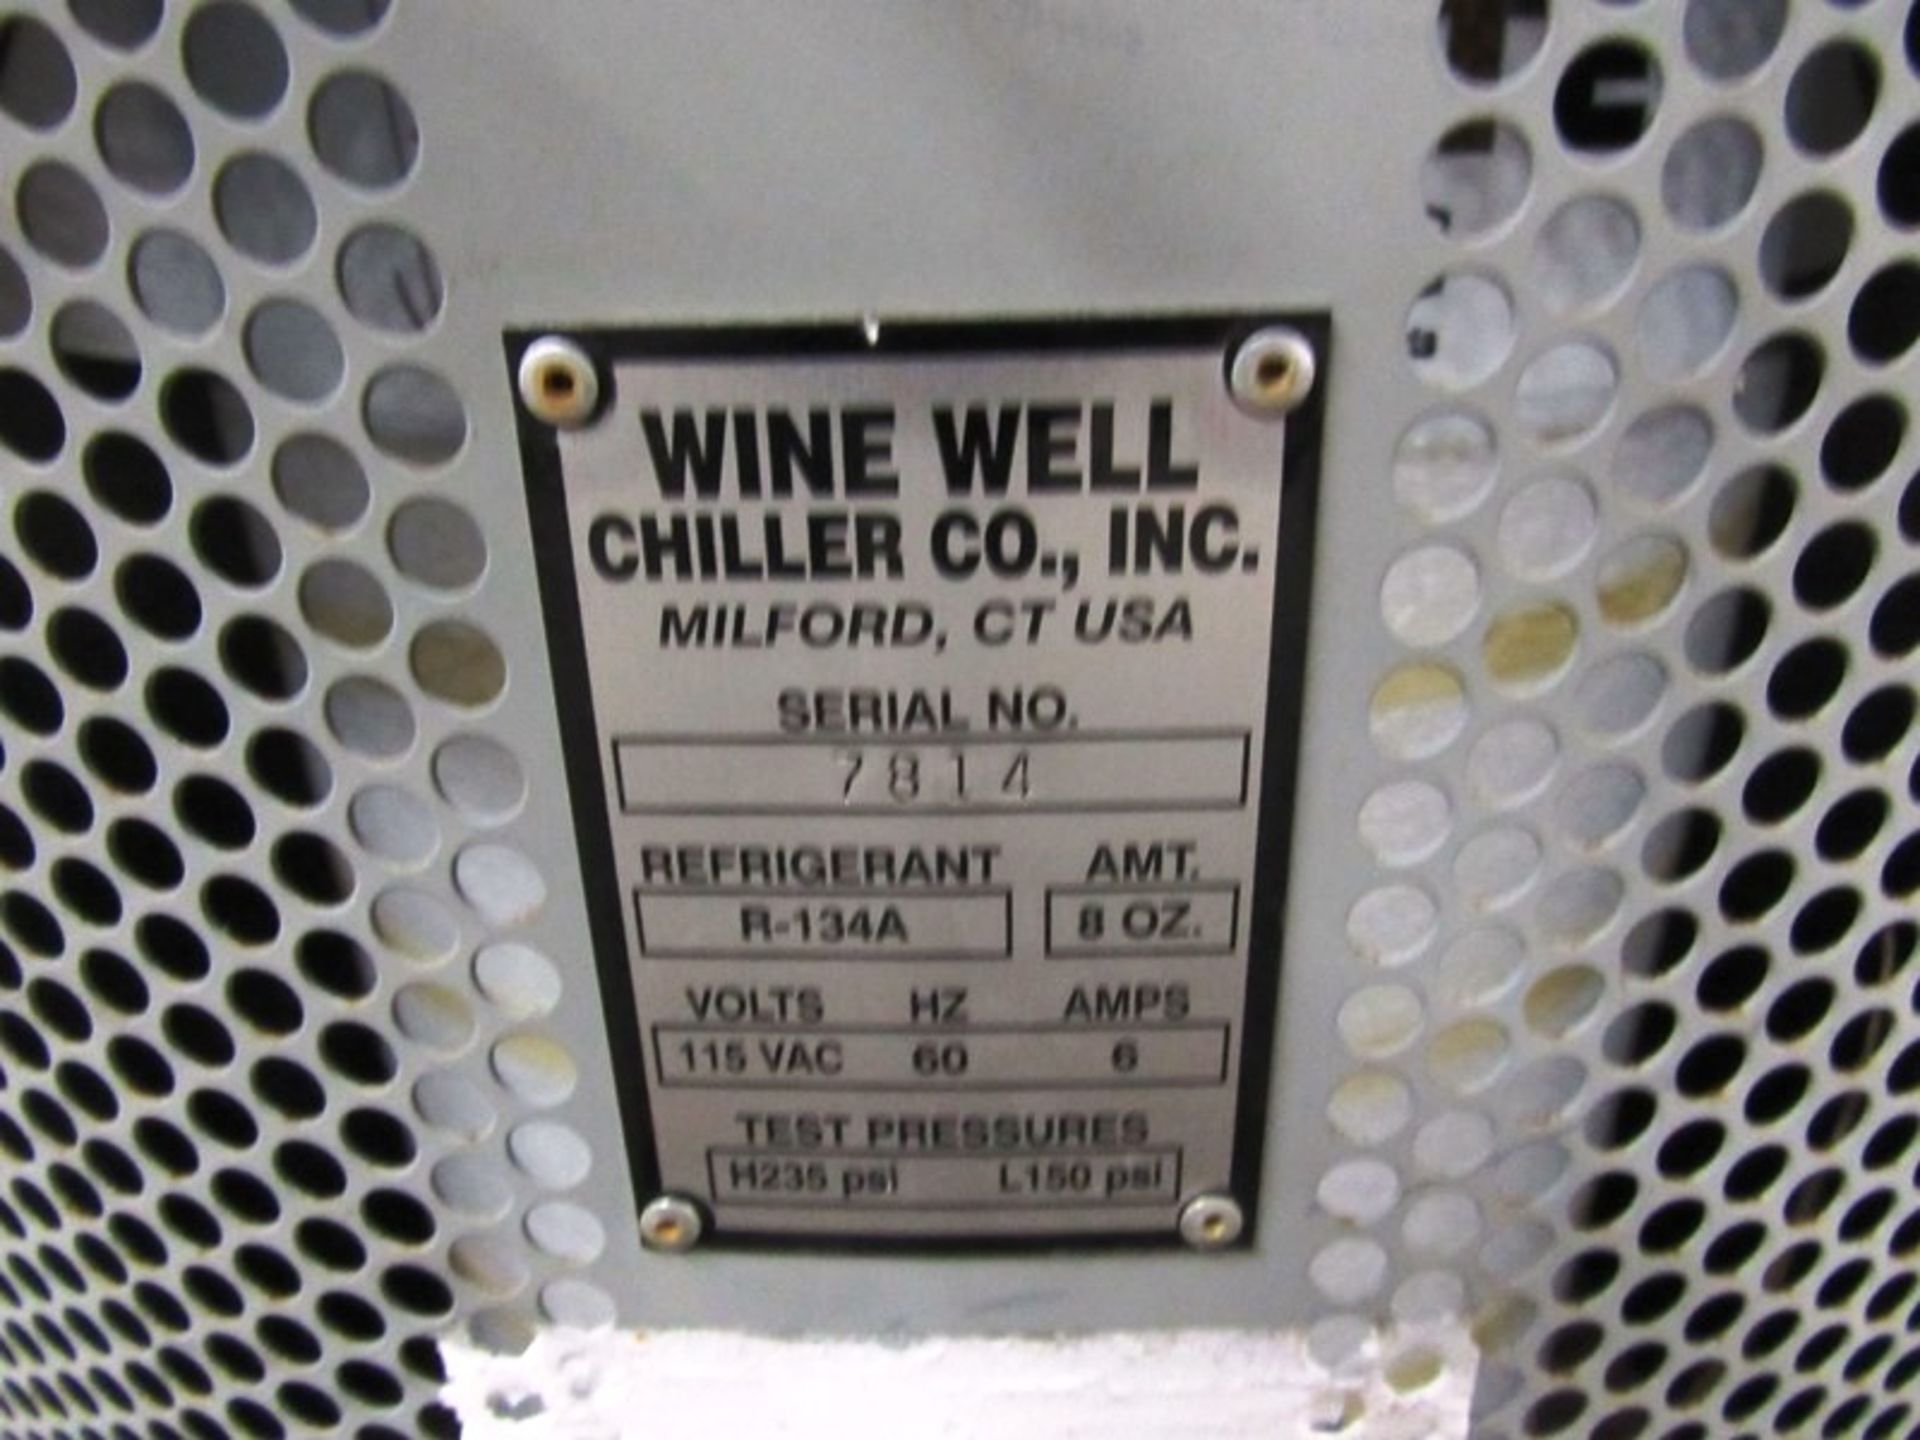 Wine Well Chiller Co. Portable Chilled Water Bath, Ser. #7814, R-134A refrigerant, 115 volts, tested - Image 6 of 6